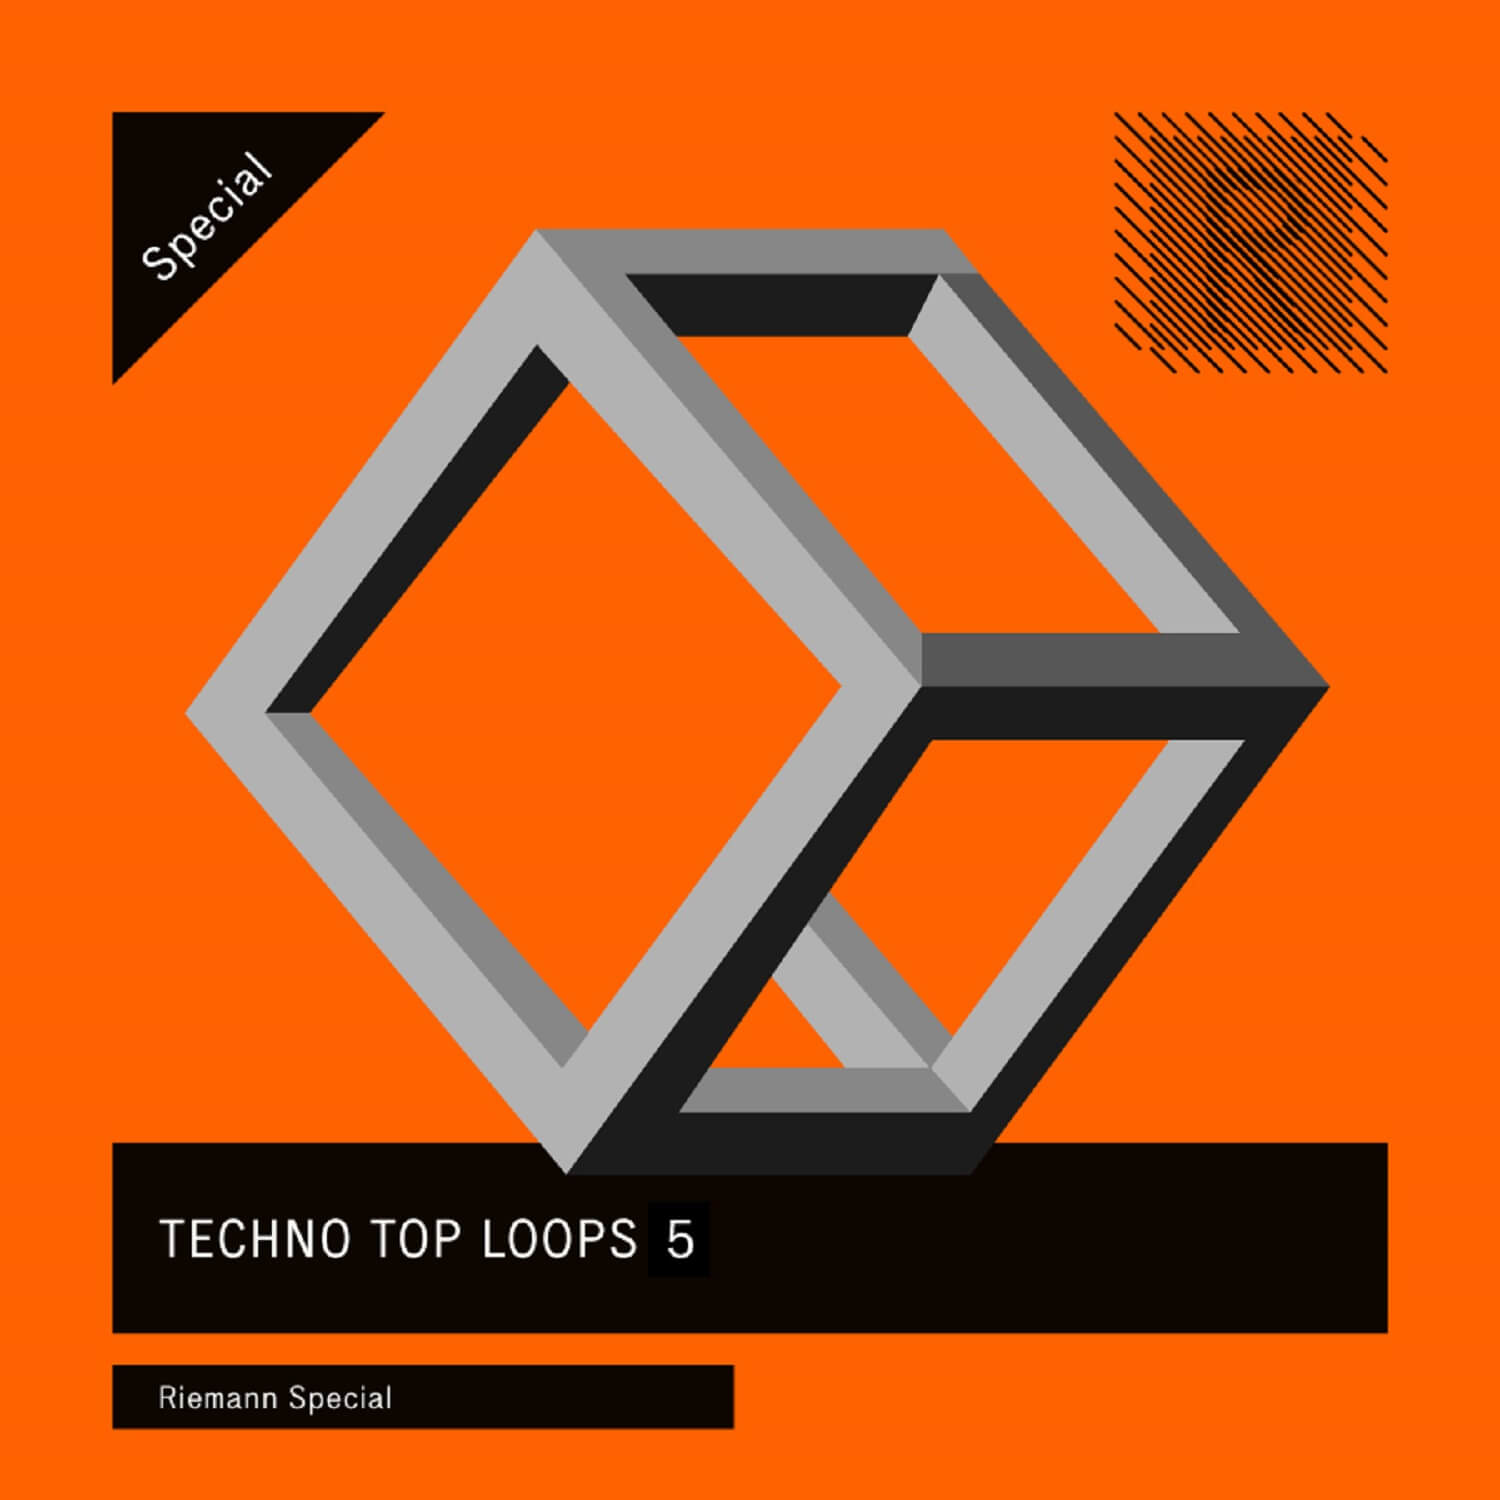 Riemann – Techno Top Loops 5